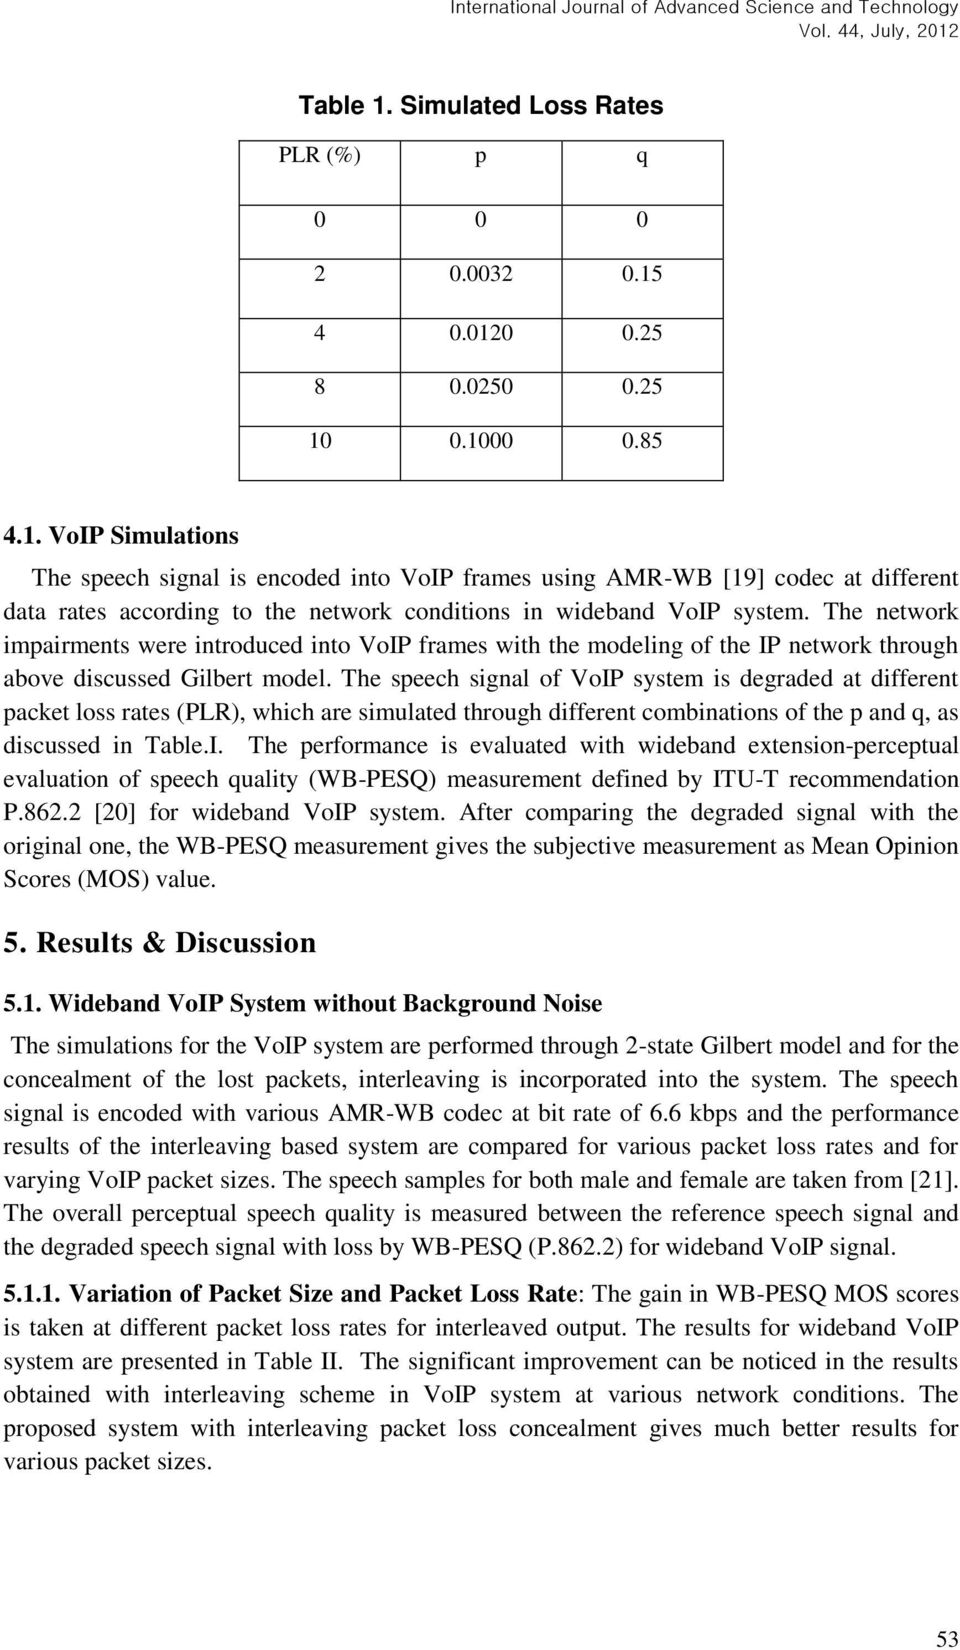 The speech signal of VoIP system is degraded at different packet loss rates (PLR), which are simulated through different combinations of the p and q, as discussed in Table.I. The performance is evaluated with wideband extension-perceptual evaluation of speech quality (WB-PESQ) measurement defined by ITU-T recommendation P.